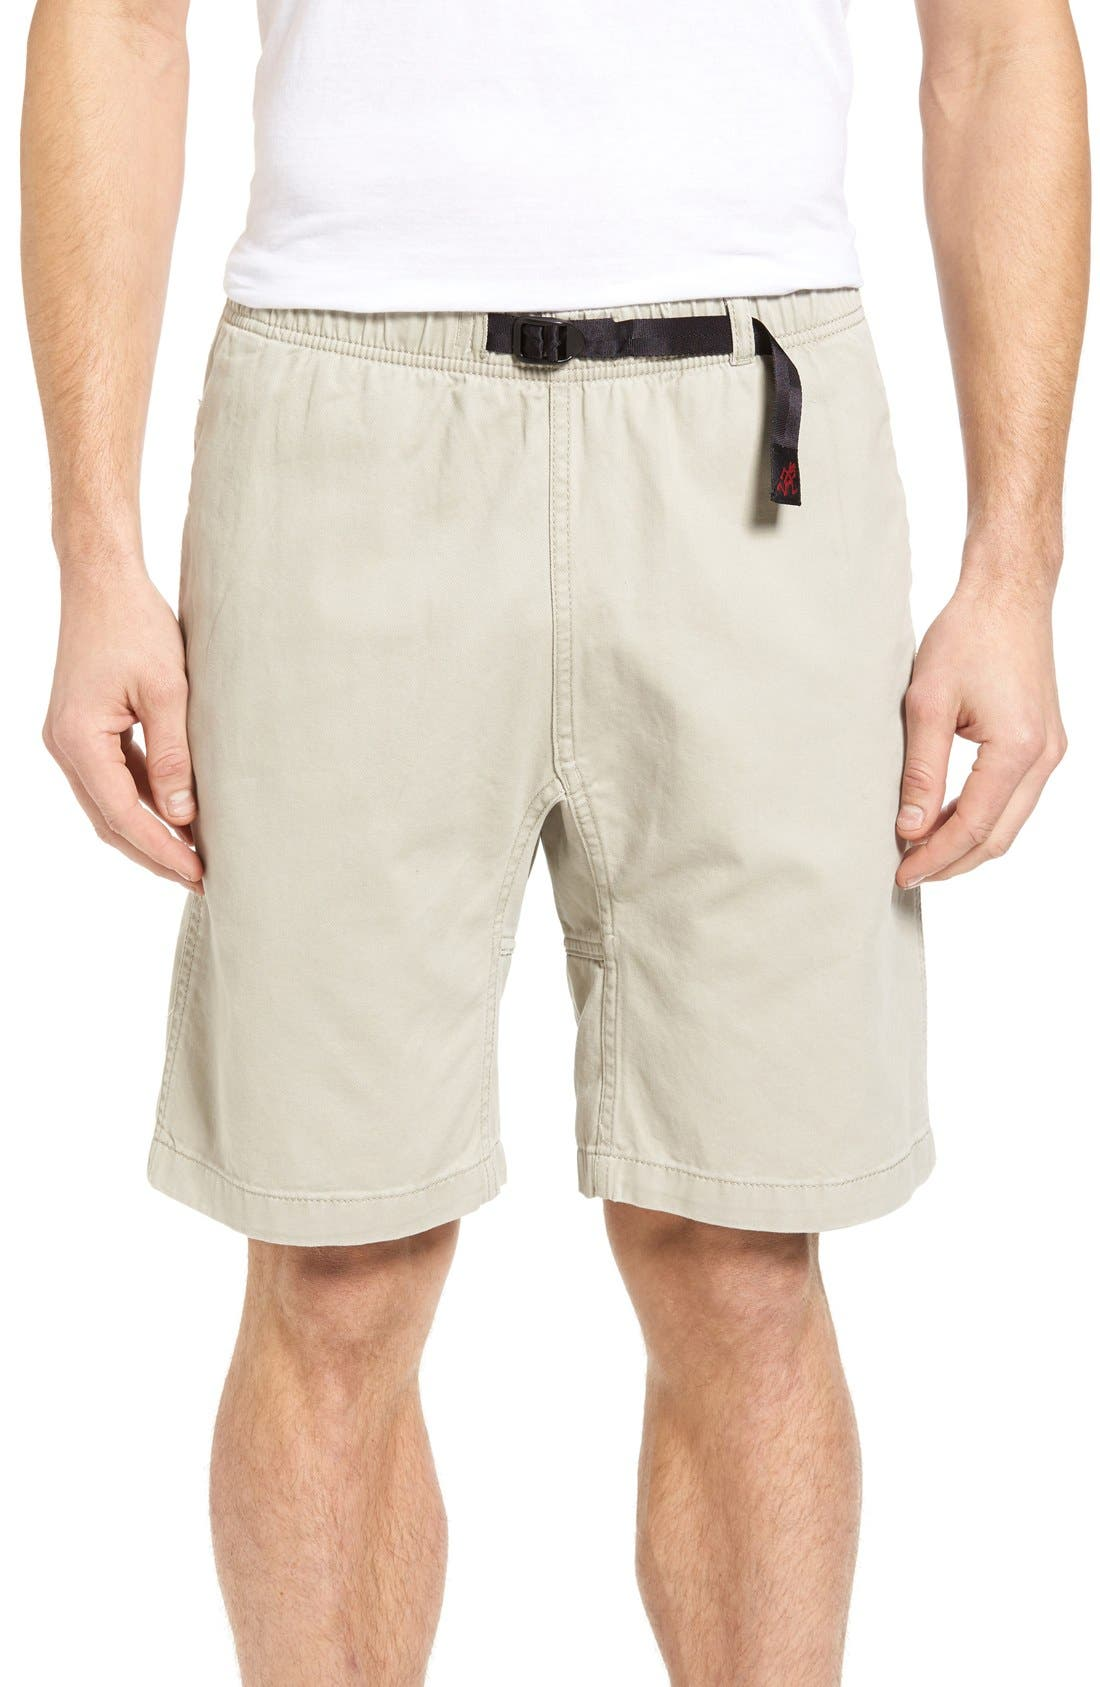 Rockin Sport Shorts,                             Main thumbnail 3, color,